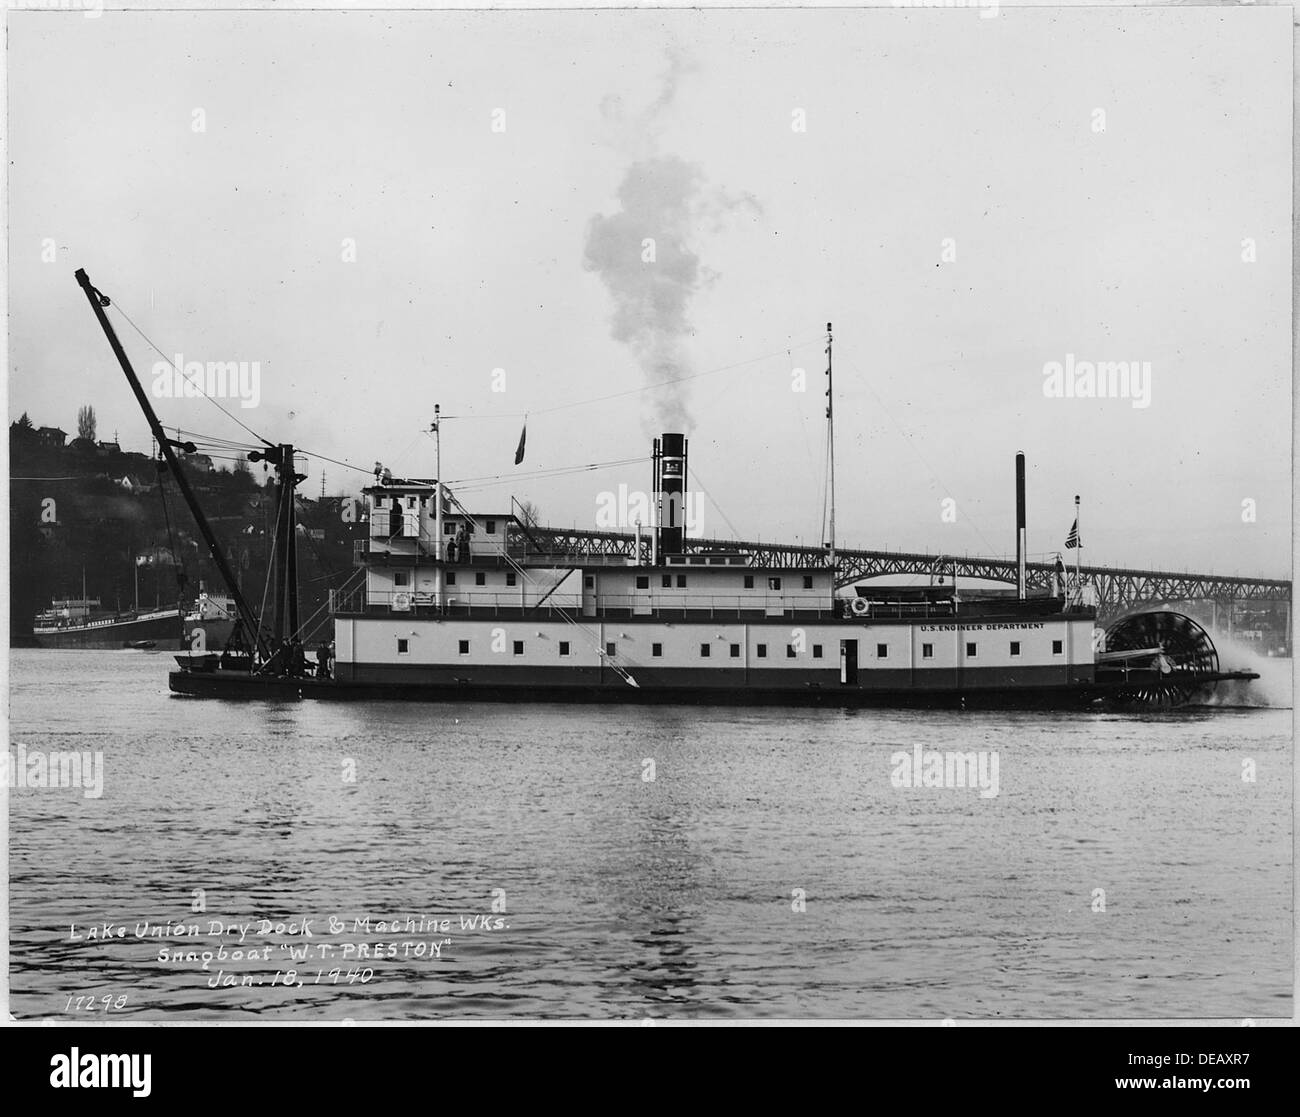 Snagboat W.T. PRESTON at Lake Union Dry Dock 298847 - Stock Image